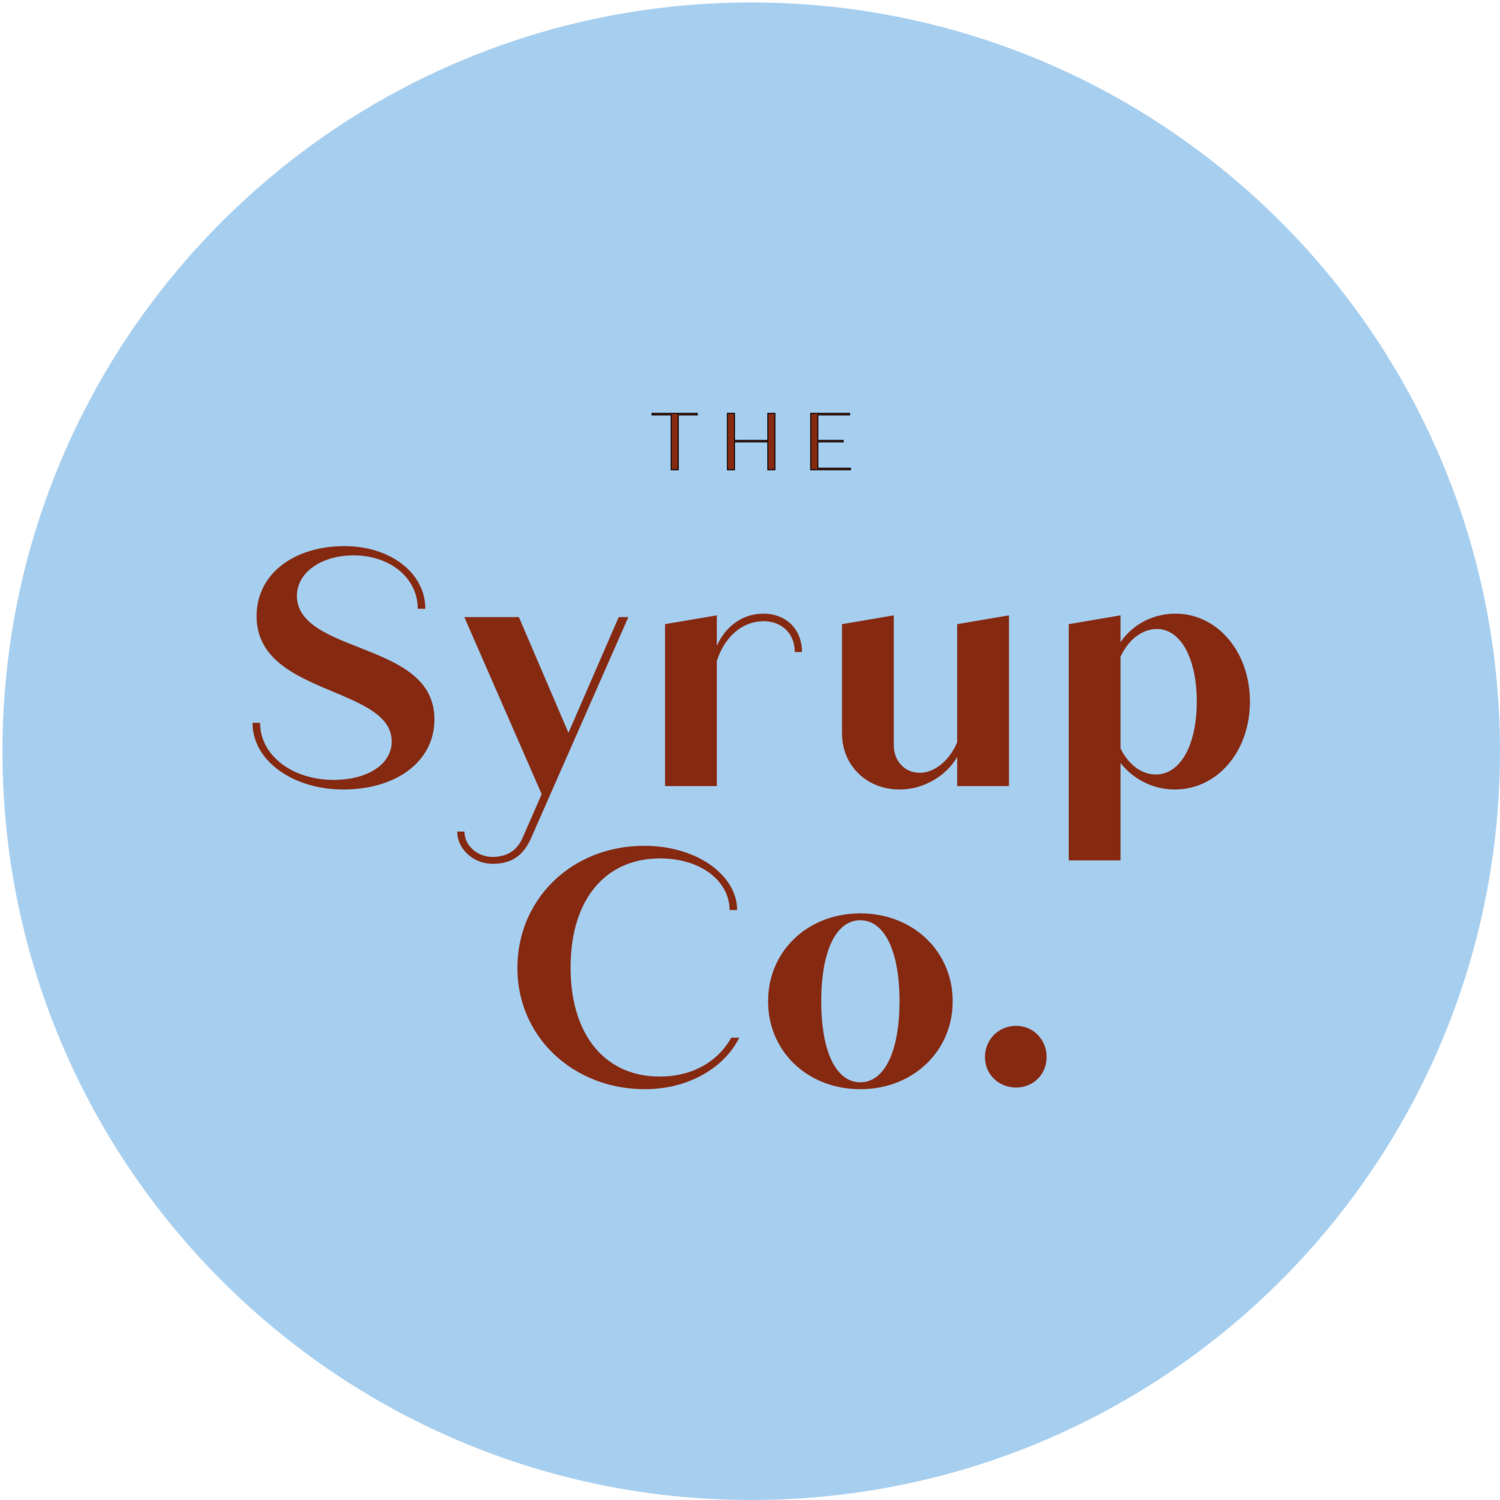 The Syrup Co